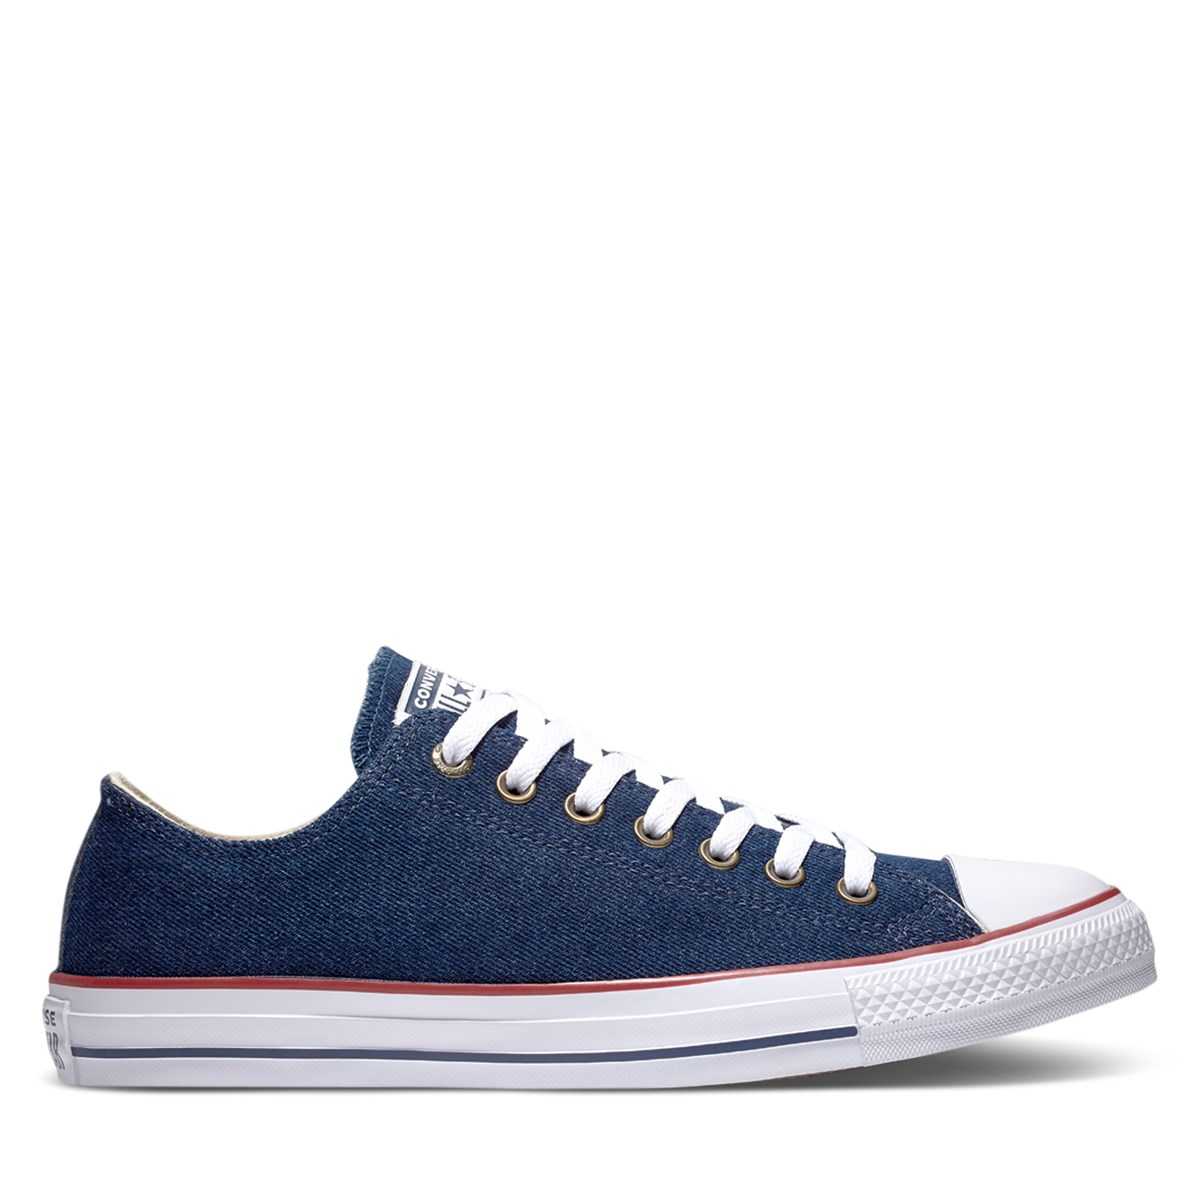 Men's Chuck Taylor All Star Denim Sneaker in Blue